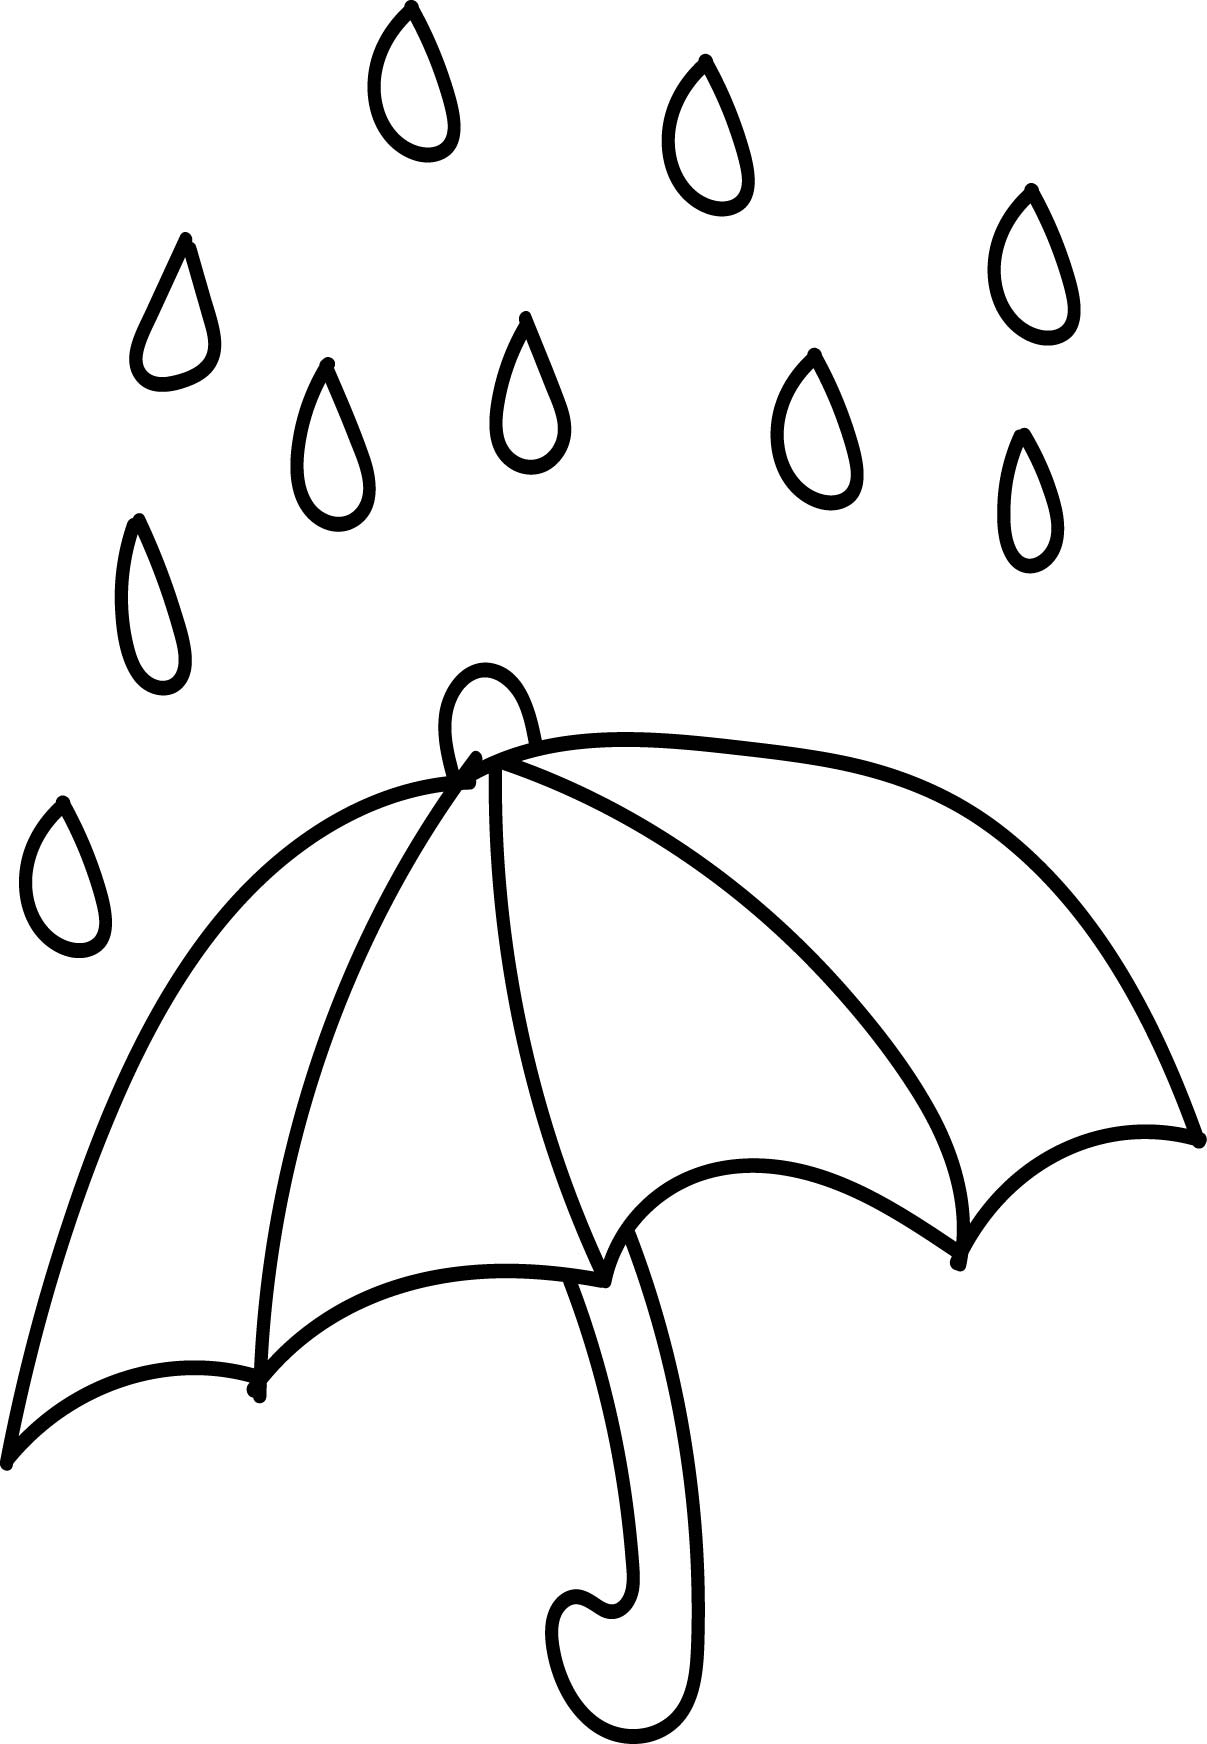 Colouring pages rain - Aftershock Spring Rain Umbrella Free April Coloring Page